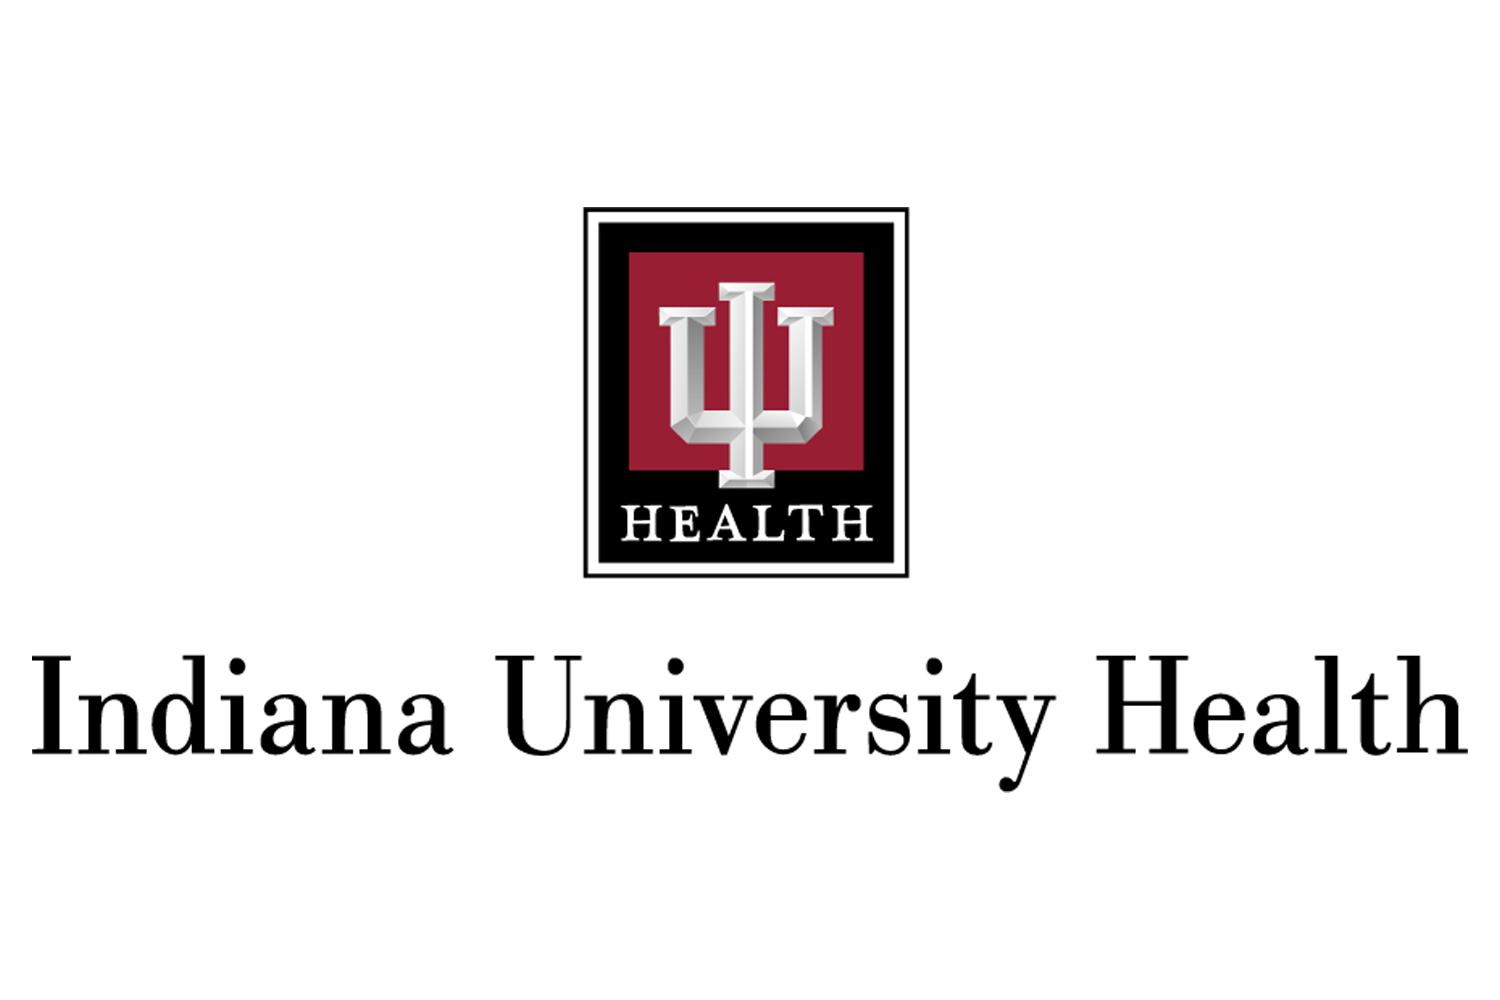 The IU health logo.